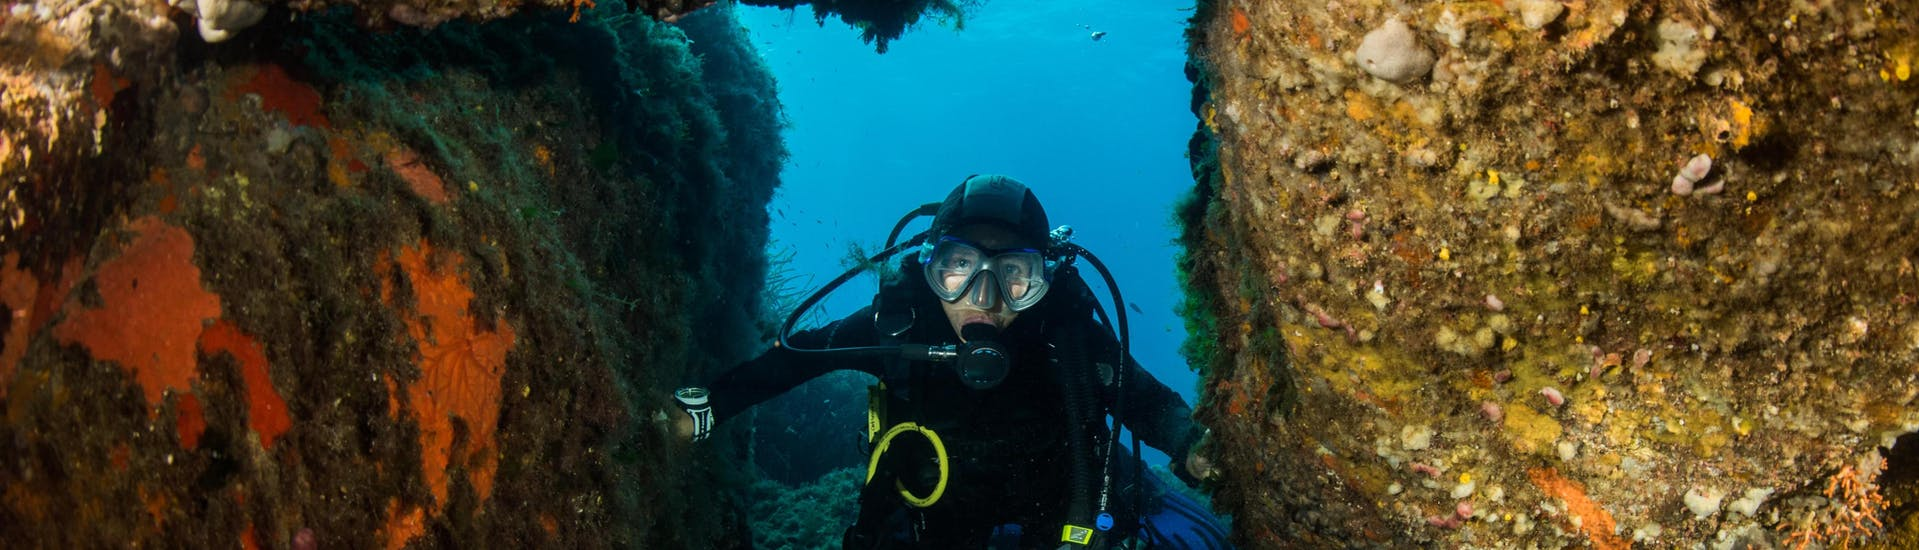 A diver is enjoying the seabed in Corse du Sud, Corsica during a diving excursion.